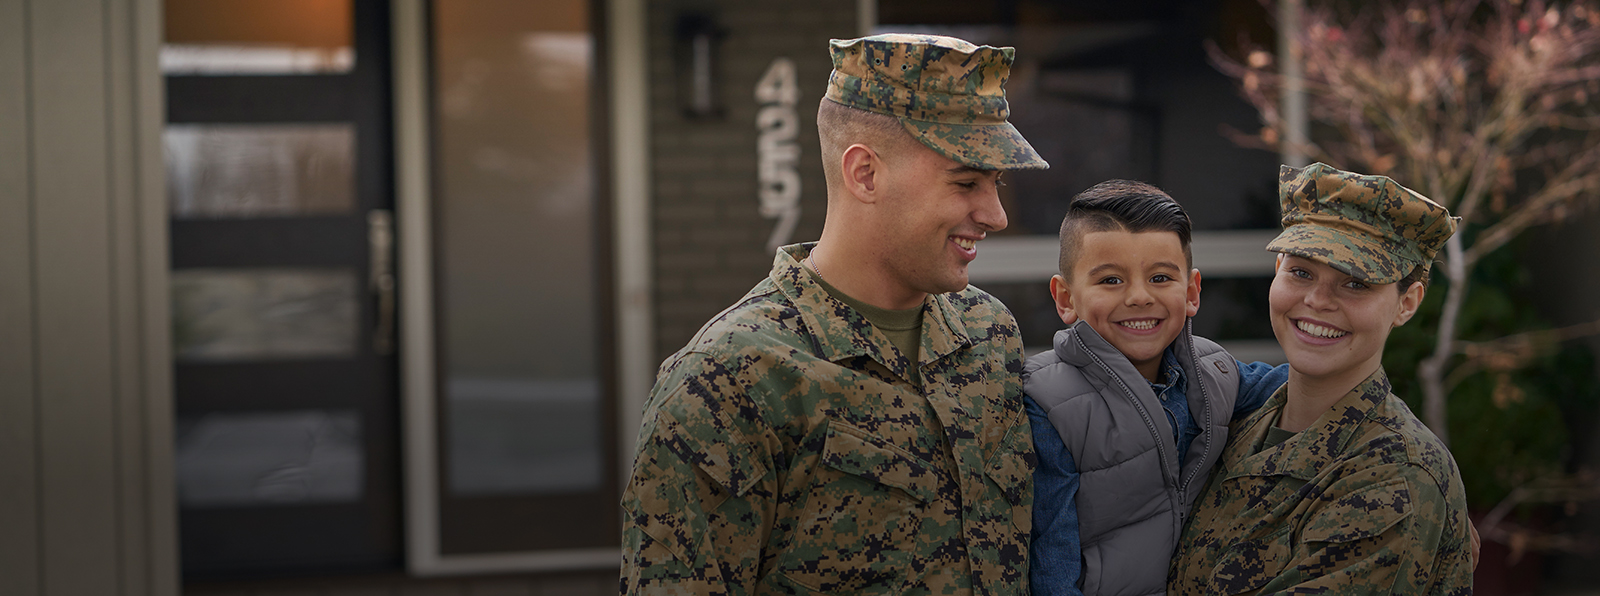 Image of Military Family with child in front of house.